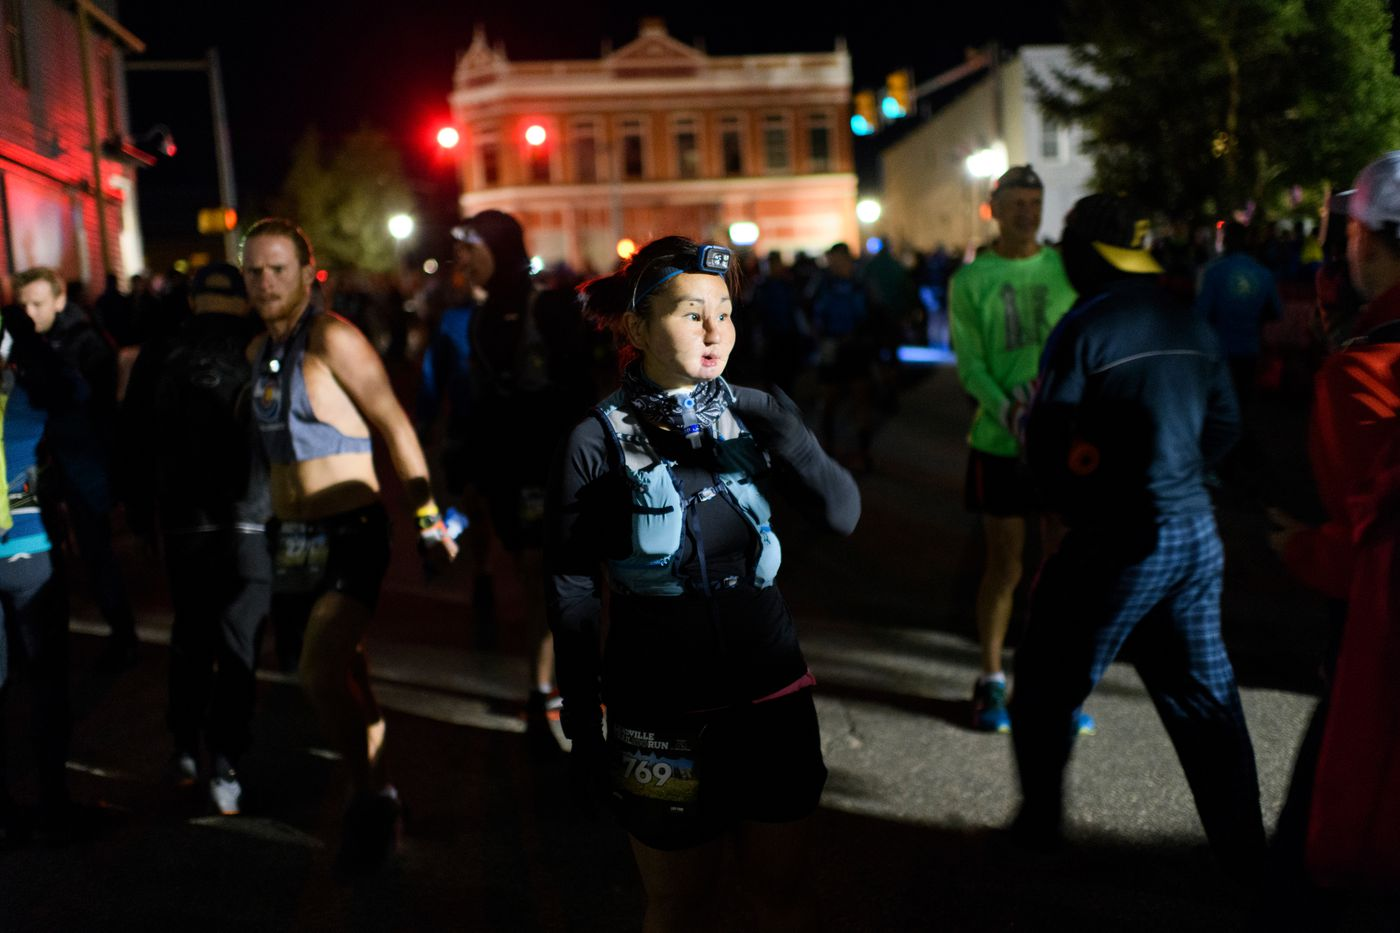 Carol Seppilu arrives at the starting line of the Leadville Trail 100 Run in Leadville, Colorado, on August 17, 2019. Seppilu survived a suicide attempt 20 years ago. Now Seppilu hopes her participation in ultramarathons can be a an example to others about overcoming difficult times. (Marc Lester / ADN)